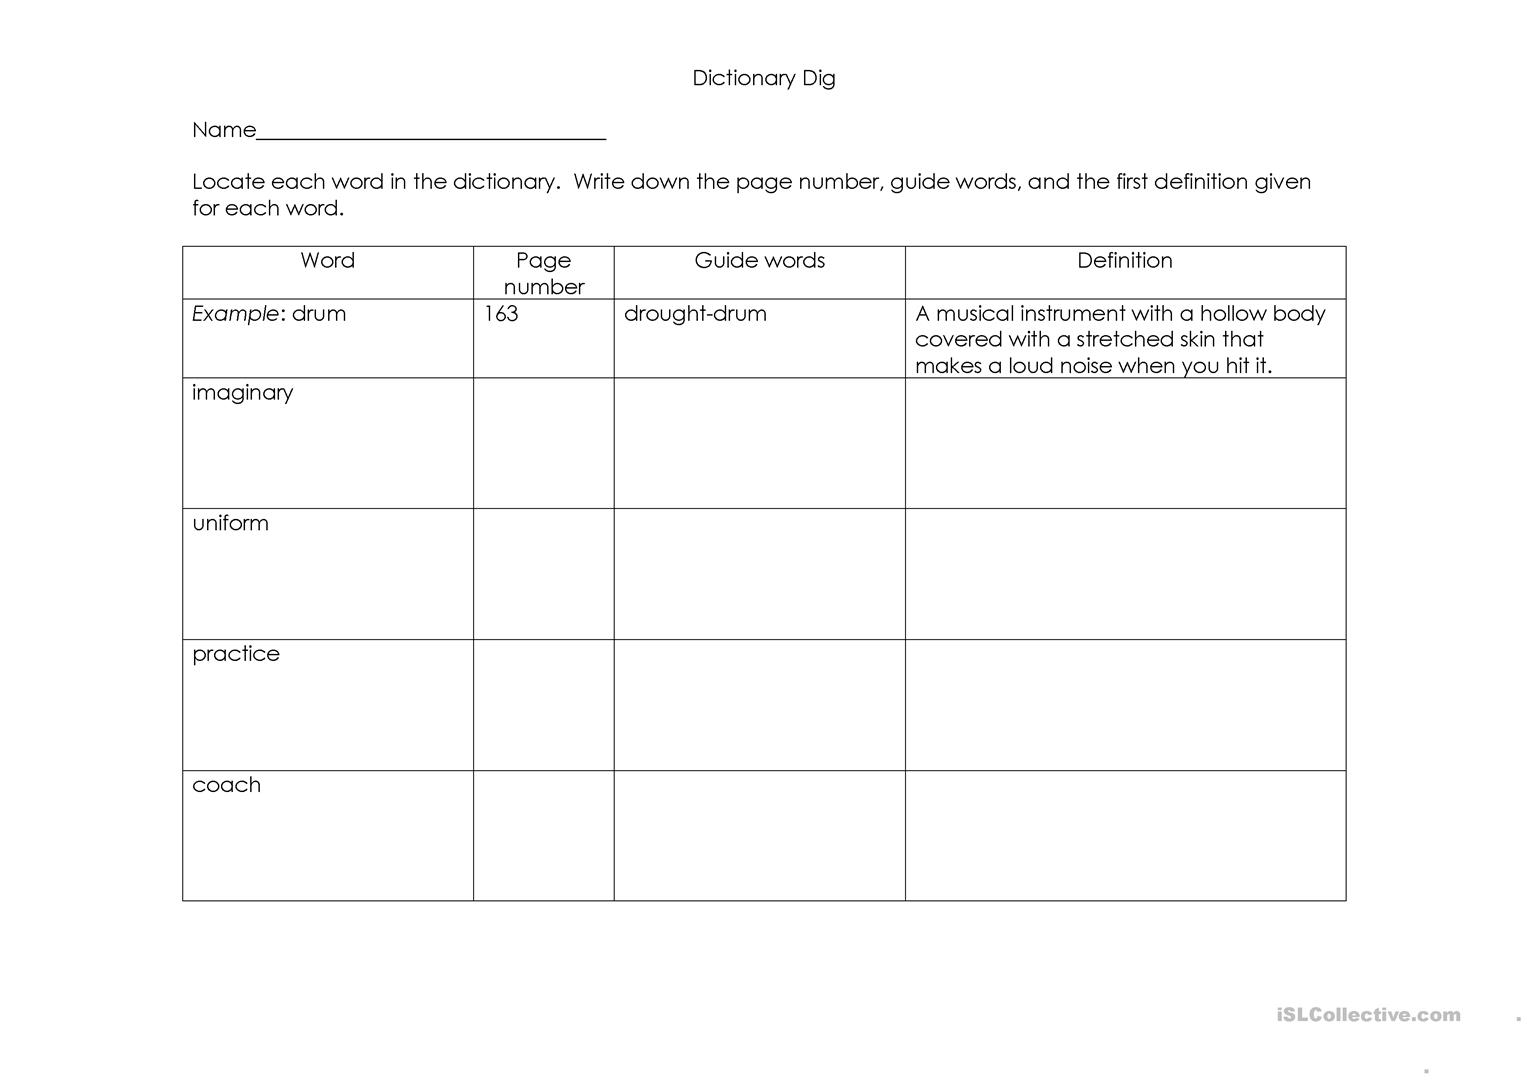 worksheet Dictionary Guide Words Worksheet dictionary dig worksheet free esl printable worksheets made by full screen